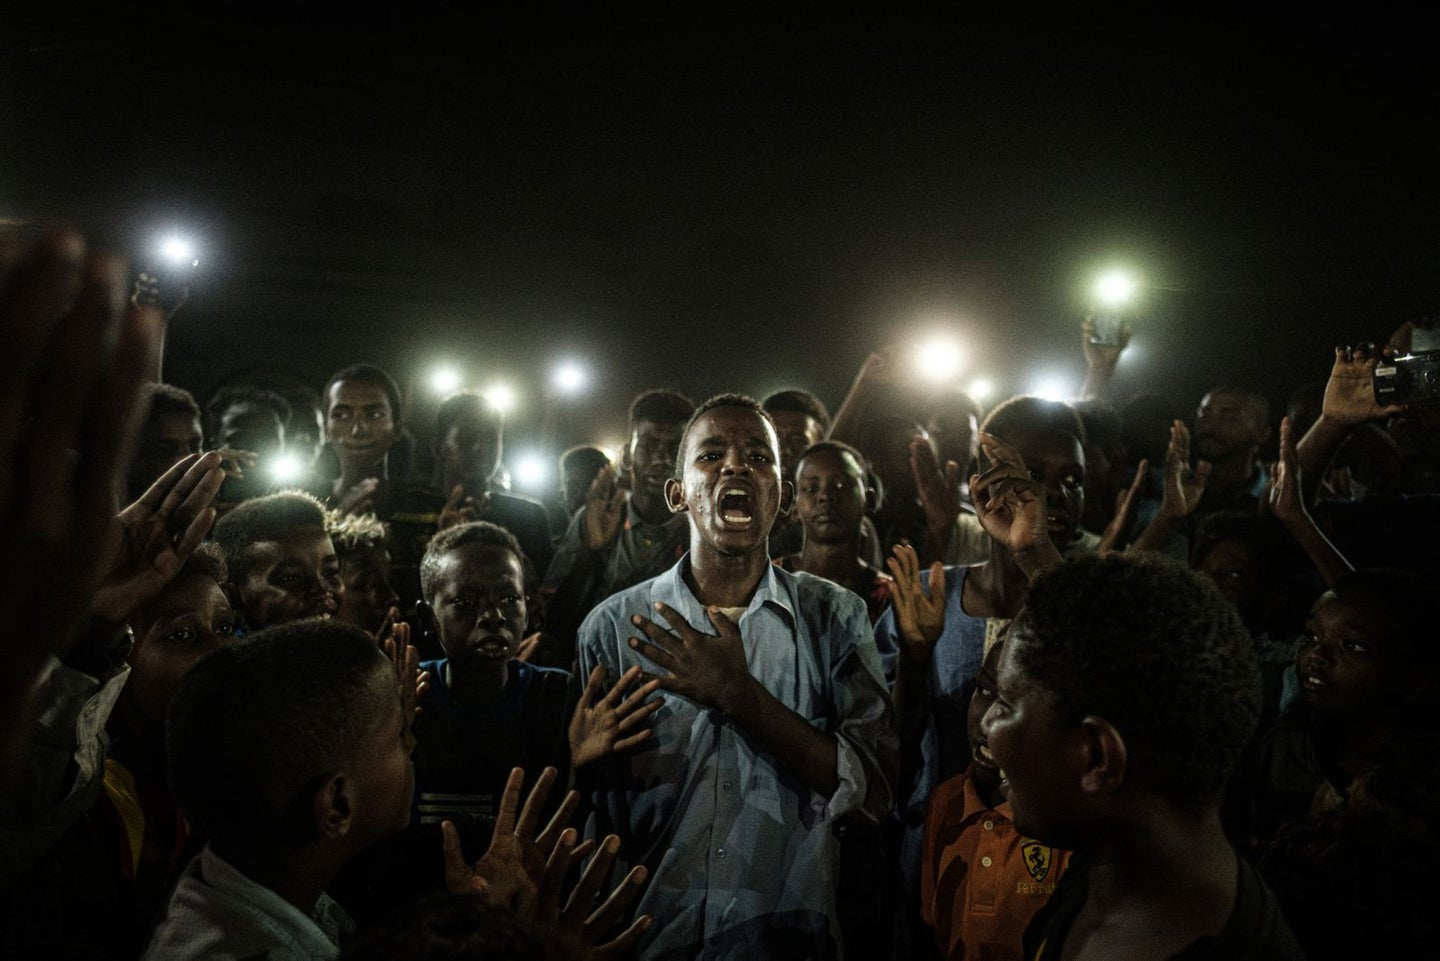 A young man, illuminated by mobile phones, recites protest poetry while demonstrators chant slogans calling for civilian rule, during a blackout in Khartoum, Sudan, on 19 June.